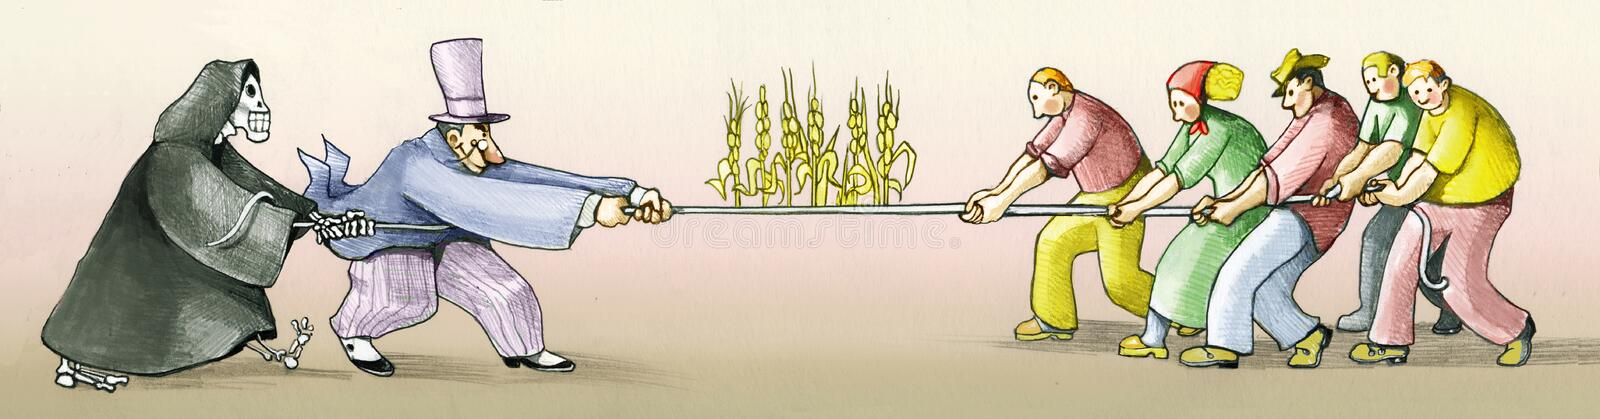 Land grabbing people figting for life. I throw to the rope between capitalist and farmers to defend the earth royalty free illustration